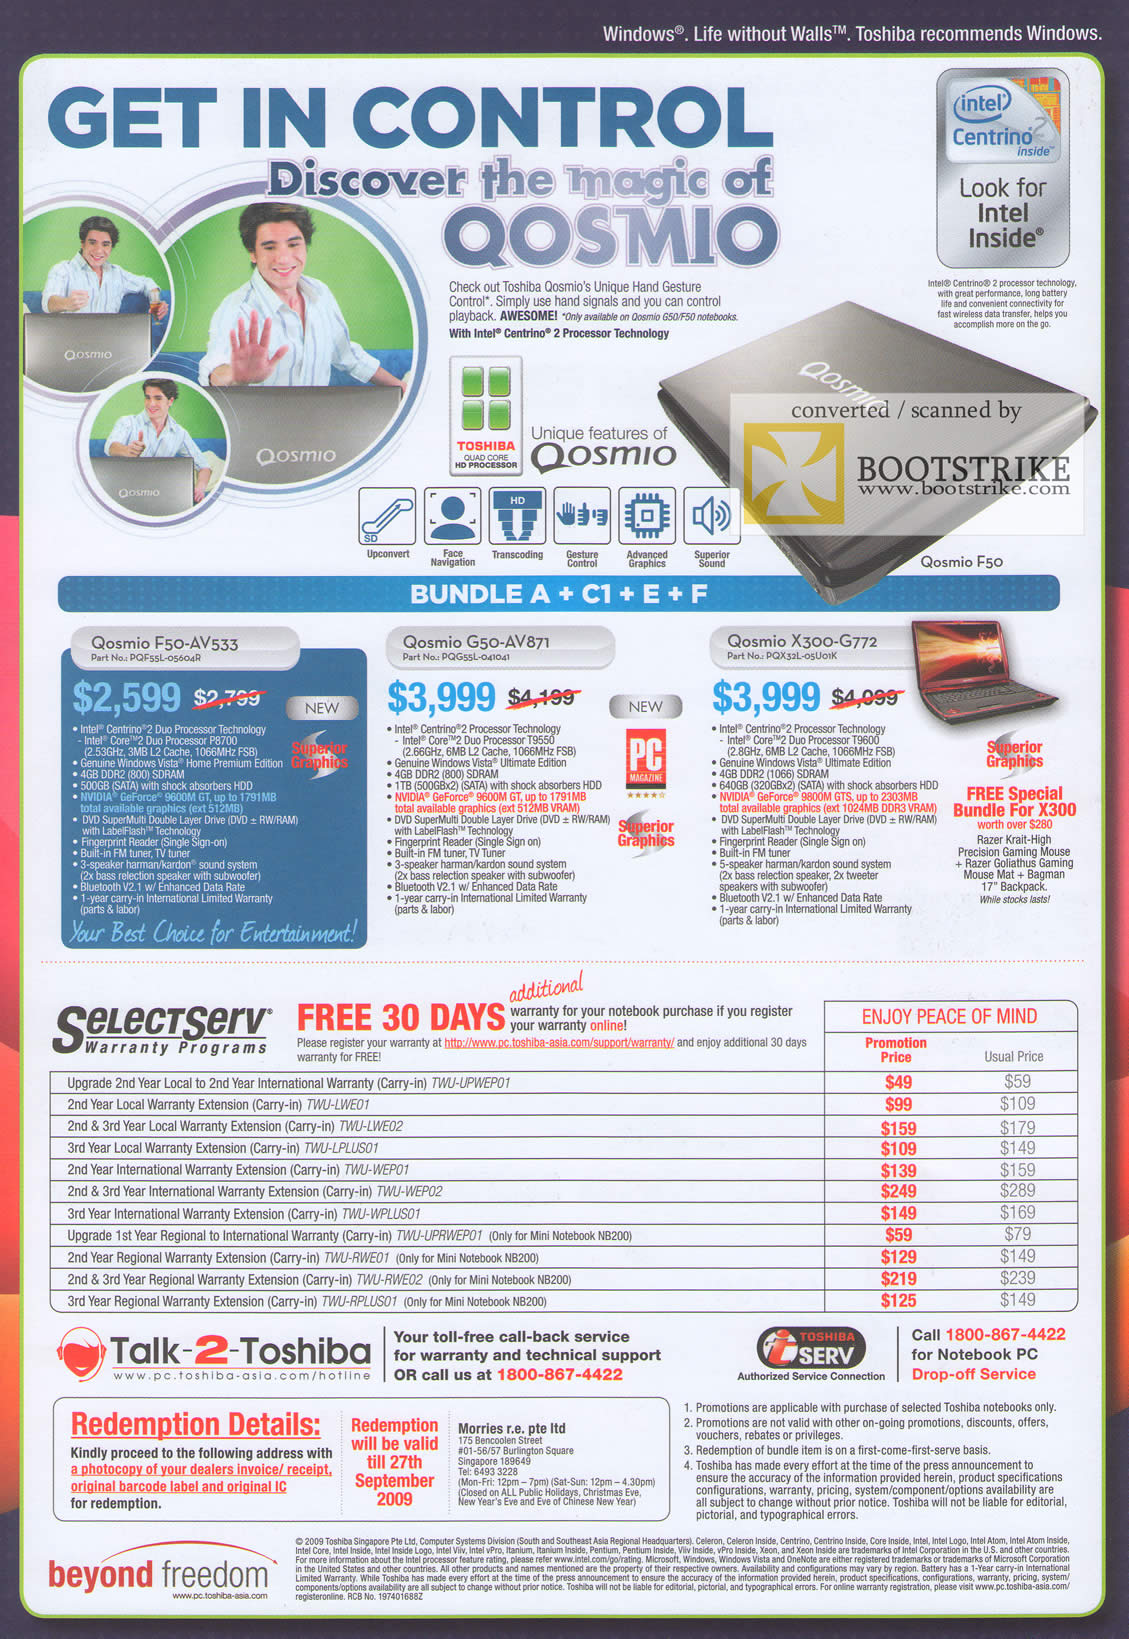 Comex 2009 price list image brochure of Toshiba Qosmio Notebooks F50-AV533 G50-AV871 X300-G772